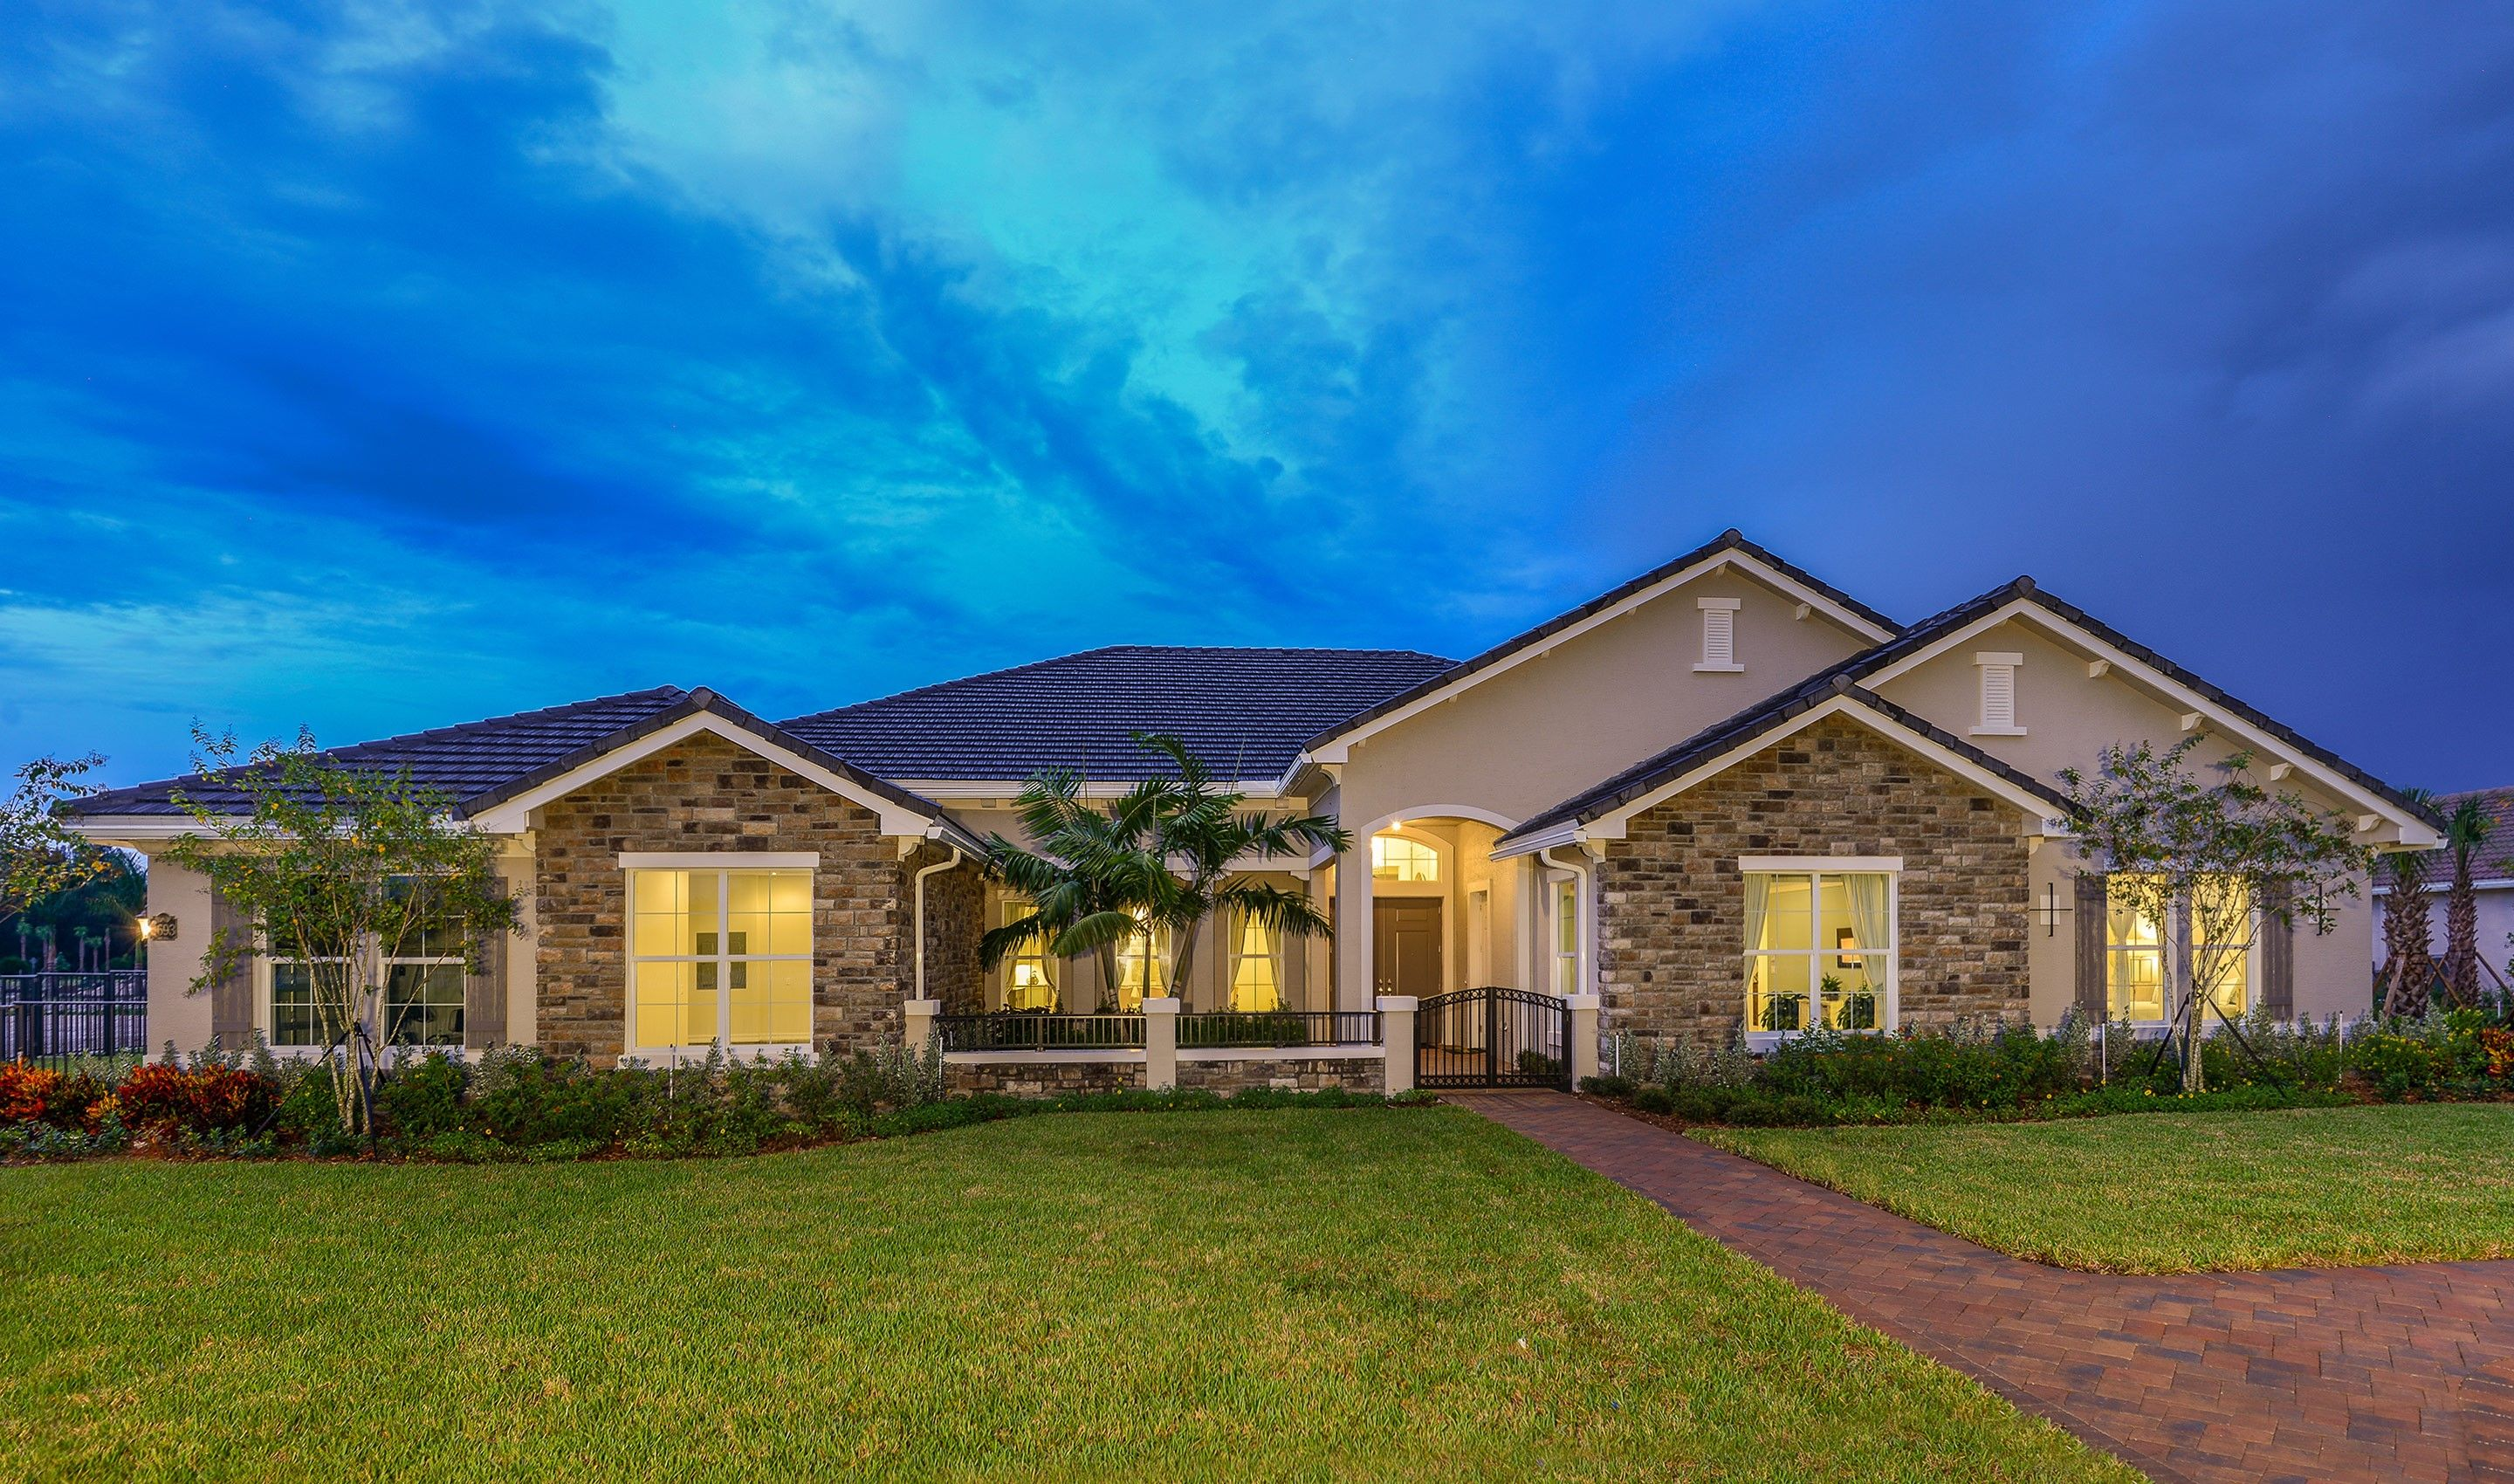 Single Family for Sale at Hawthorne 5125 East Sterling Ranch Circle, Homesite 59 Davie, Florida 33314 United States